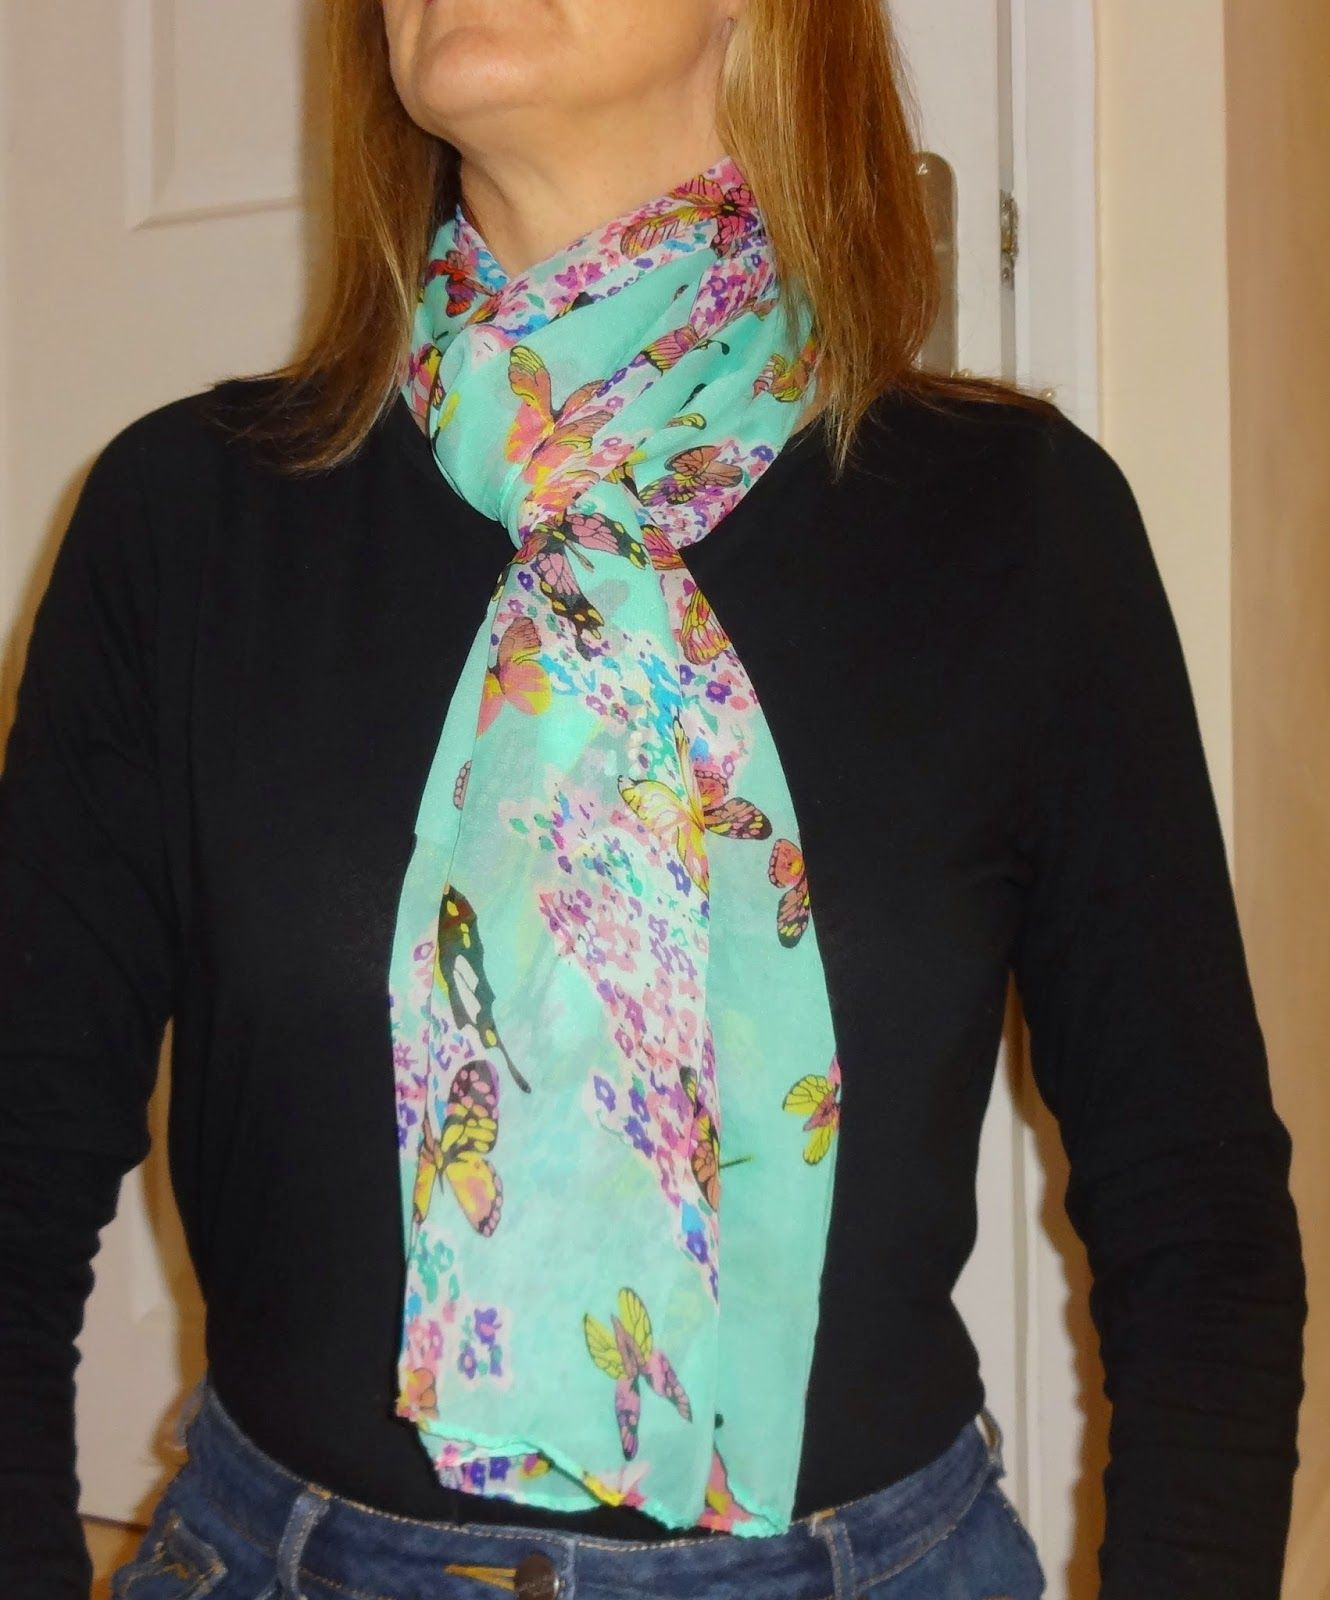 Wendy's Delights: Born Pretty Store Floral Butterfly Scarf FREE SHIPPING & 10% DISCOUNT CODE HXBQ10